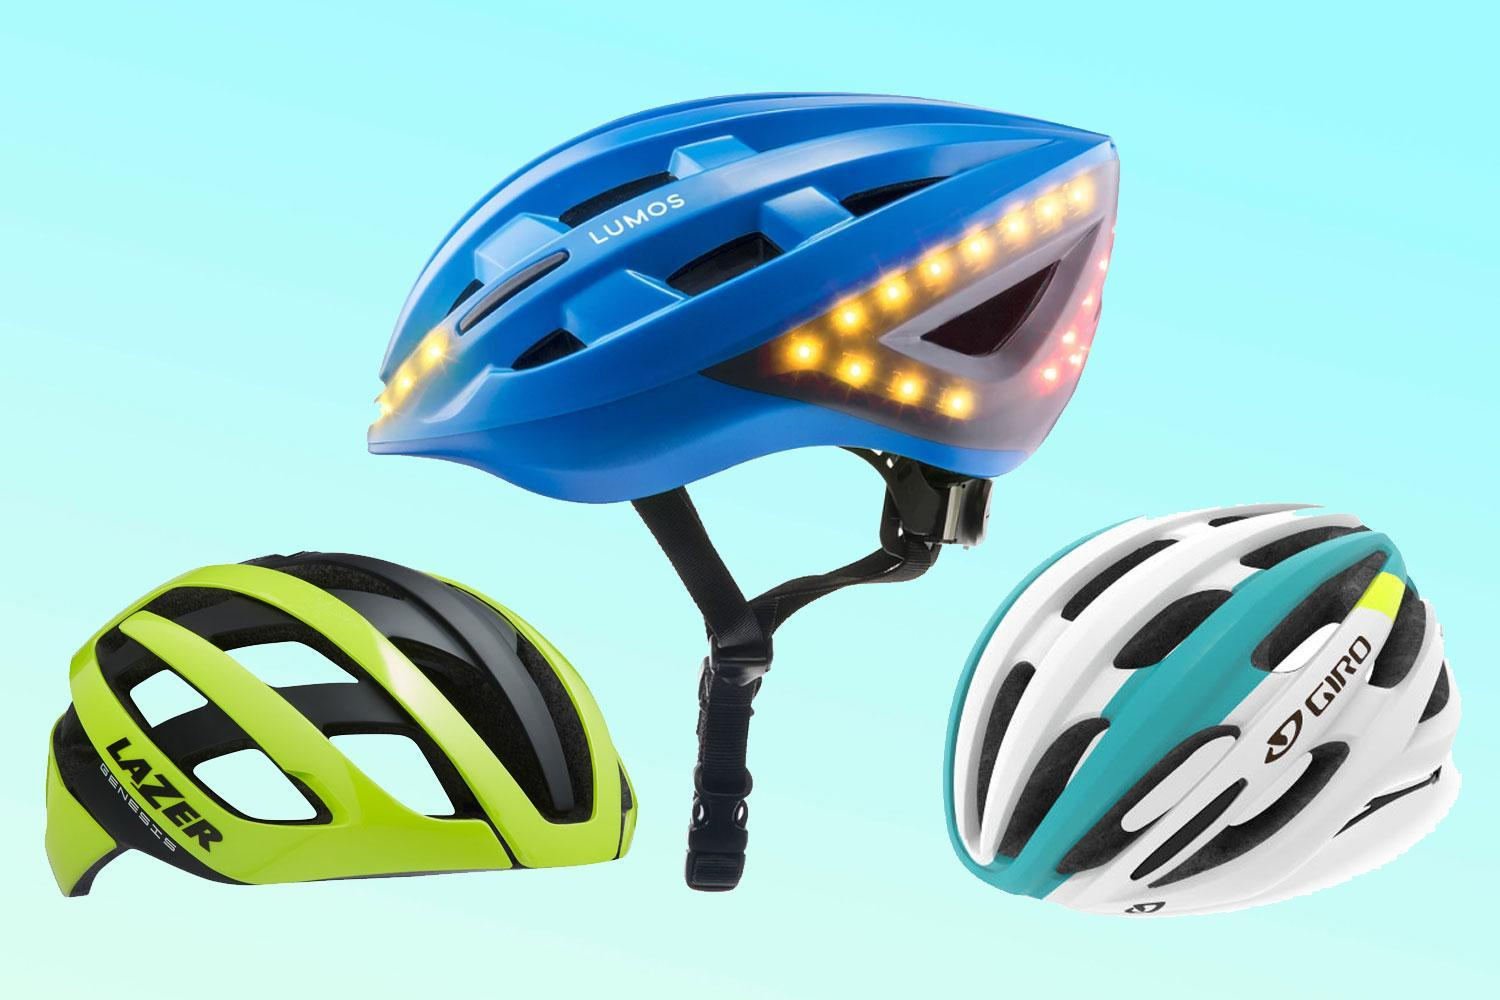 This bike helmet monitors your health and has turn signals that are activated by your Apple Watch